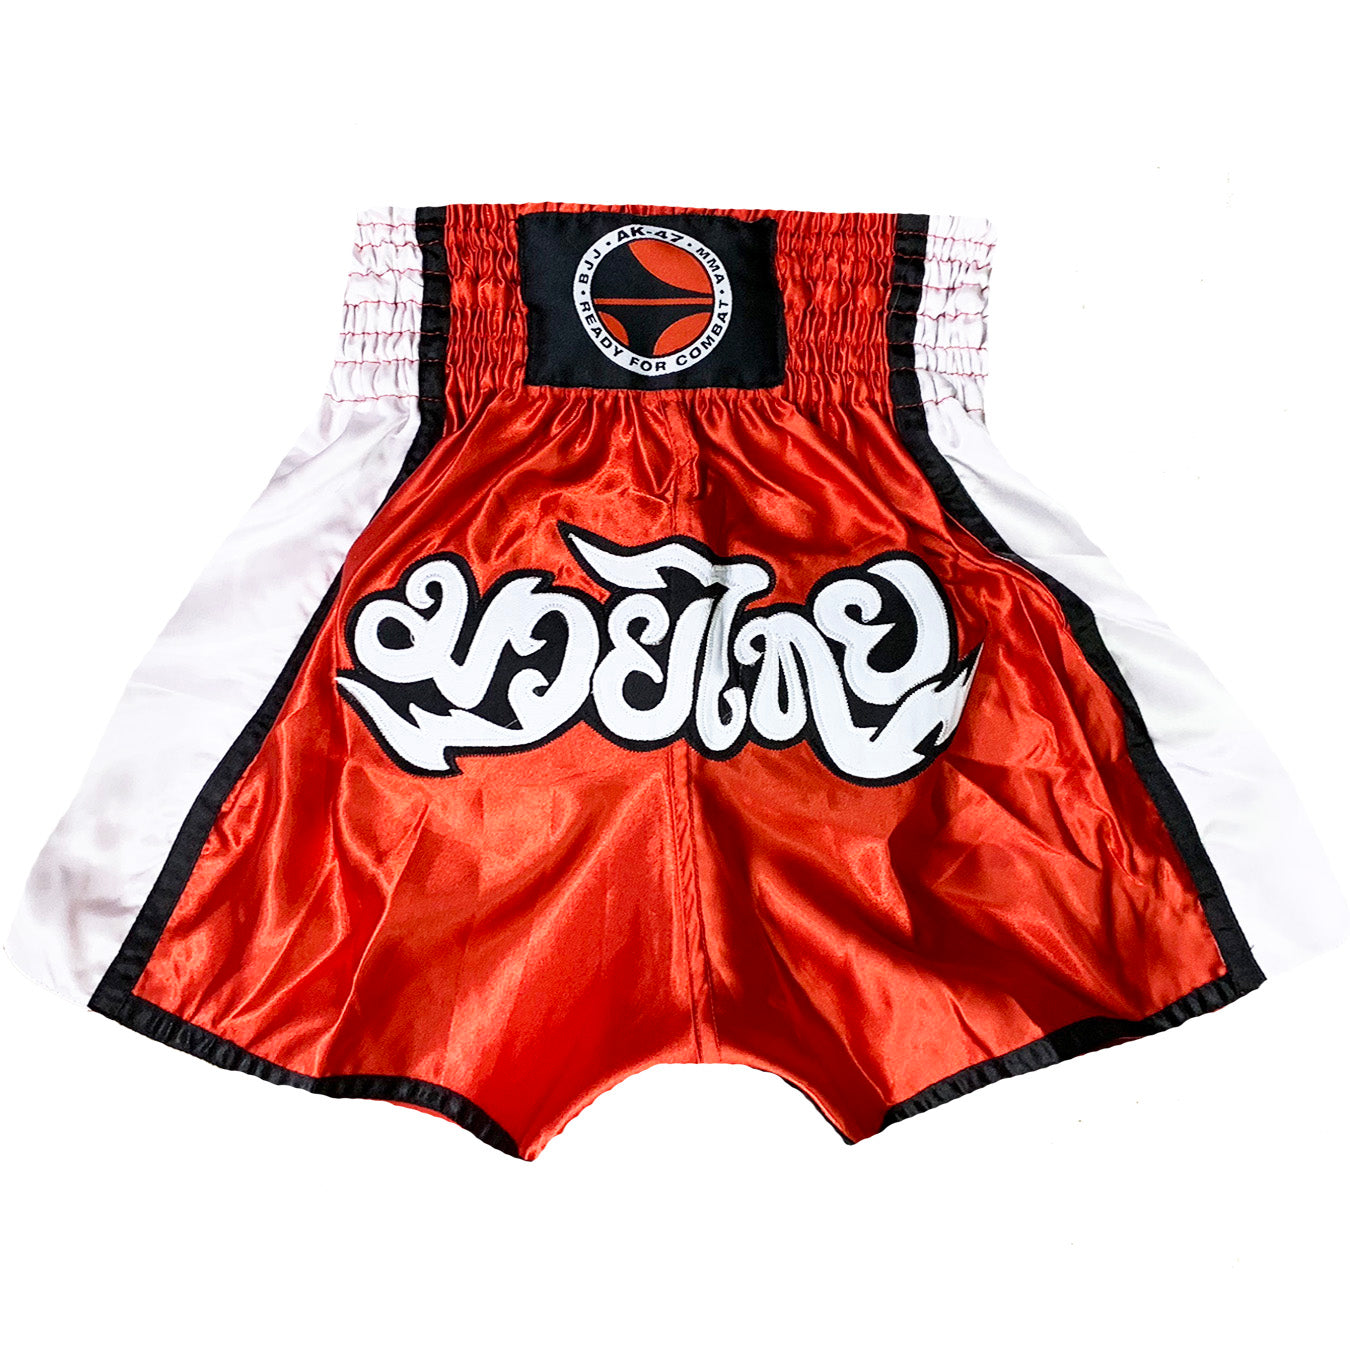 AK-47 Muay Thai Shorts Red and Black